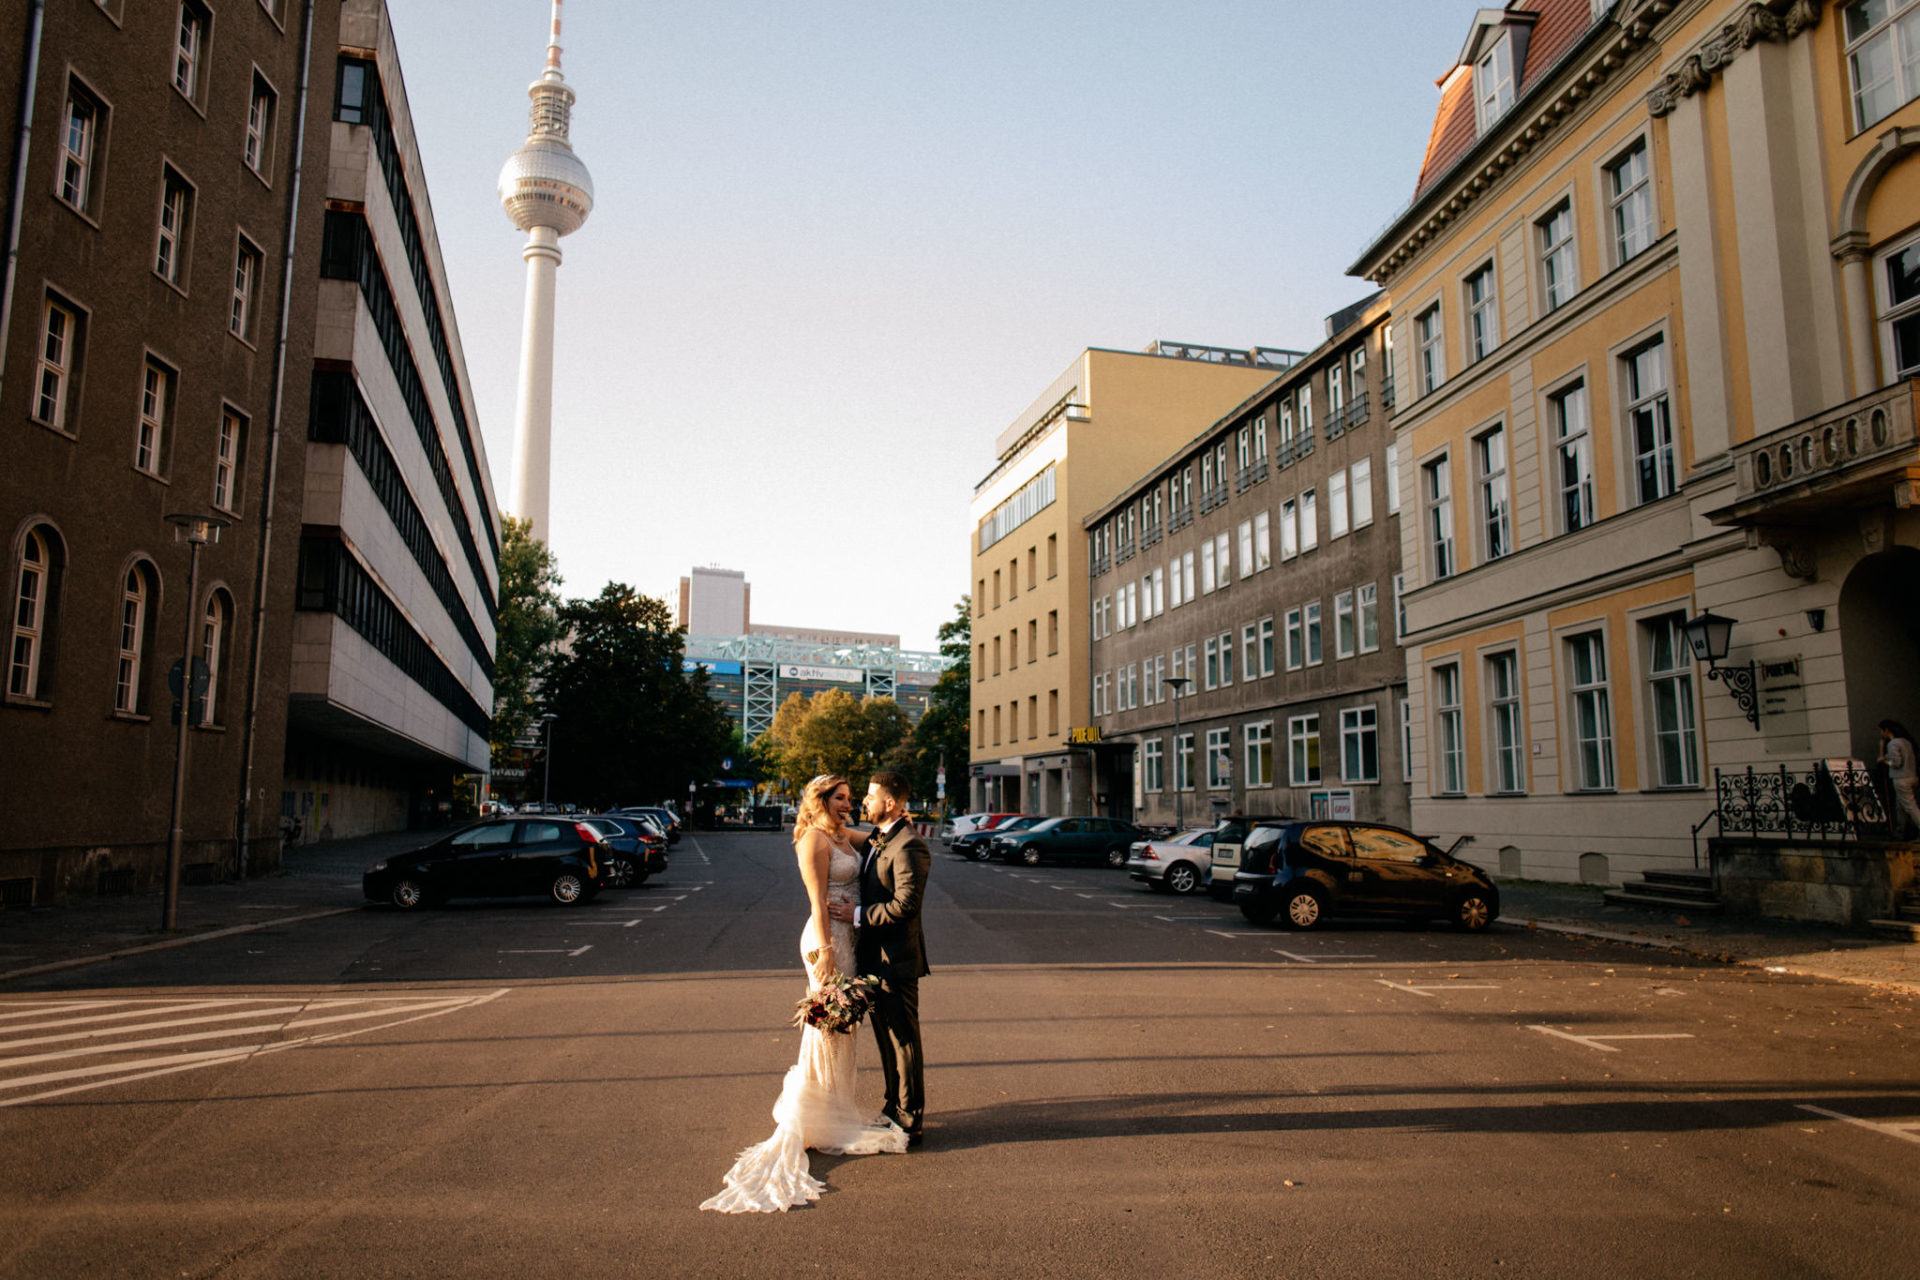 documentary wedding photographer berlin-destination wedding miami-glamourous wedding gatsby style-black tie dress code-cuban bride-german american wedding